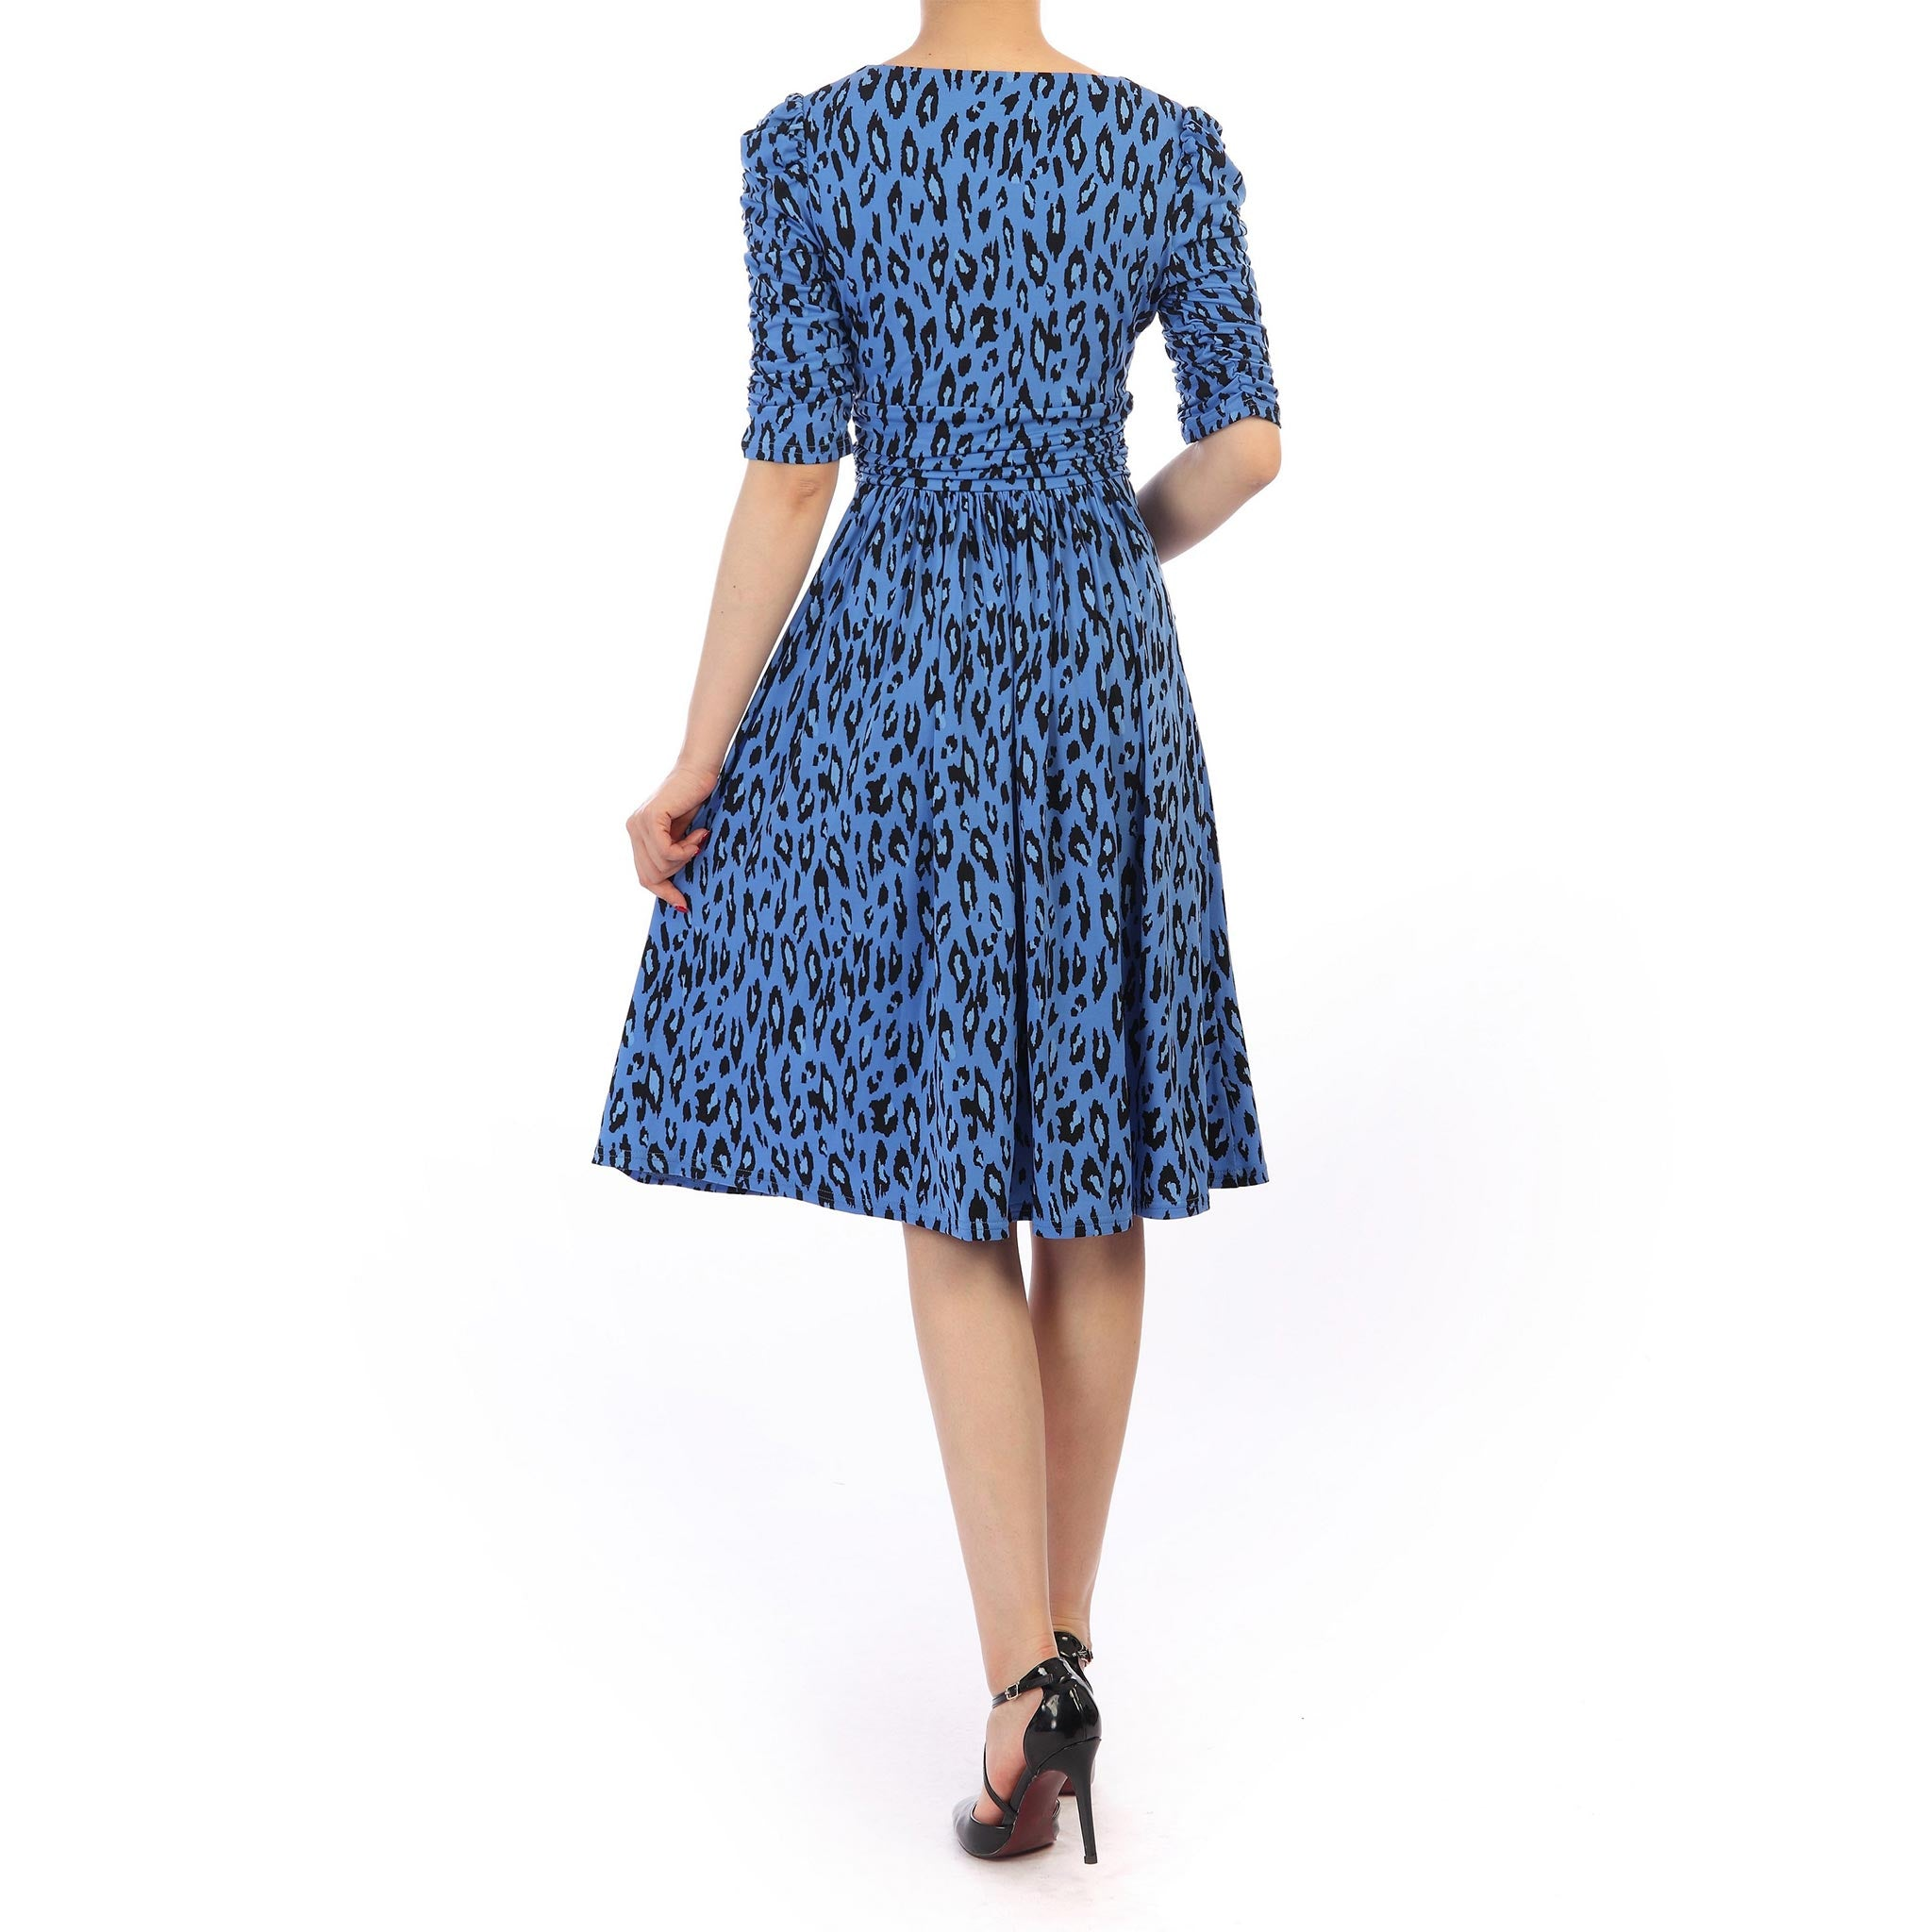 79e811a6e Blue Multi Animal Print Vintage 1940s Gathered Sleeve Tea Dress - Pretty  Kitty Fashion